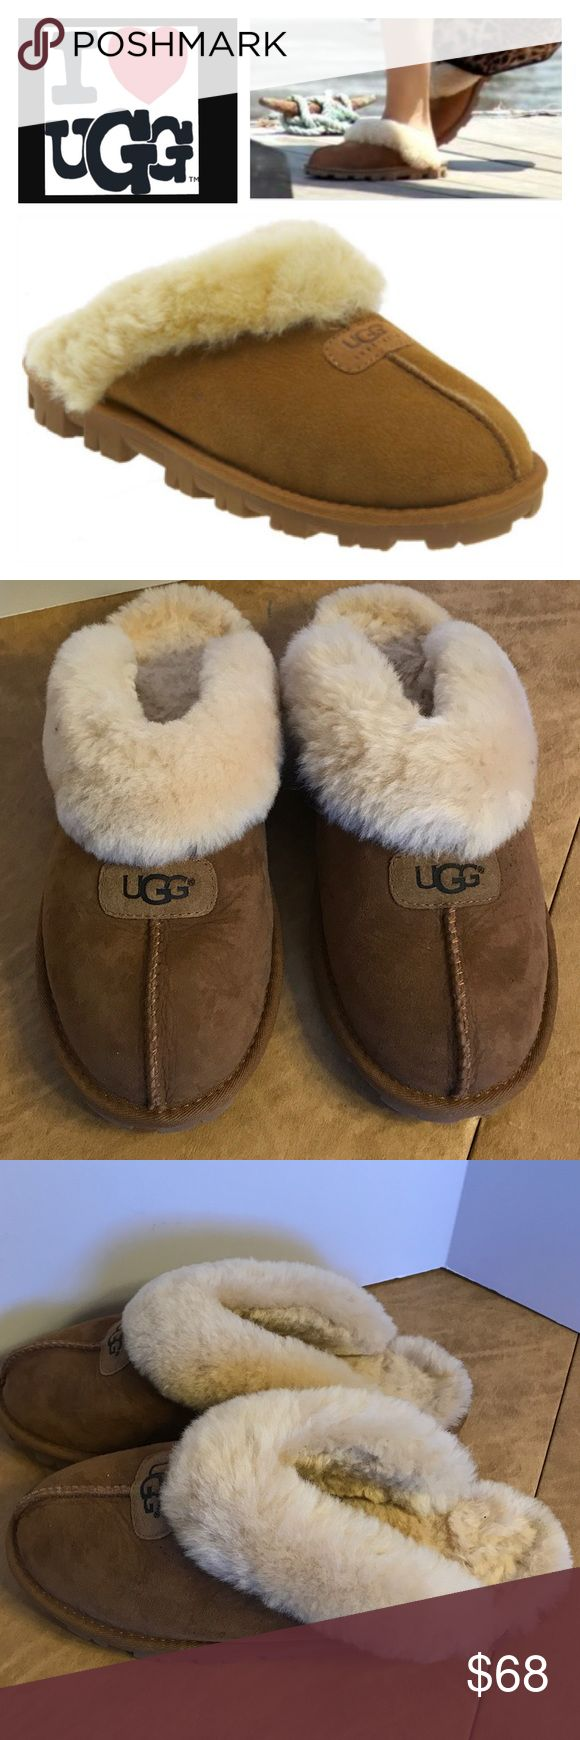 UGG Croquette Genuine Shearling Slipper An incredibly plush, genuine shearling lining creates superior softness in a comfy, cozy slipper. Wear them barefoot for maximum benefit; genuine sheepskin helps keep feet dry and comfortable in cold temperatures. The sturdy sole on this slipper ensures their durability and makes them ideal for indoor/outdoor wear. Suede upper/genuine shearling lining/EVA outsole. Shoes are new without box. There is some sticker residue on the sole of one shoe from…